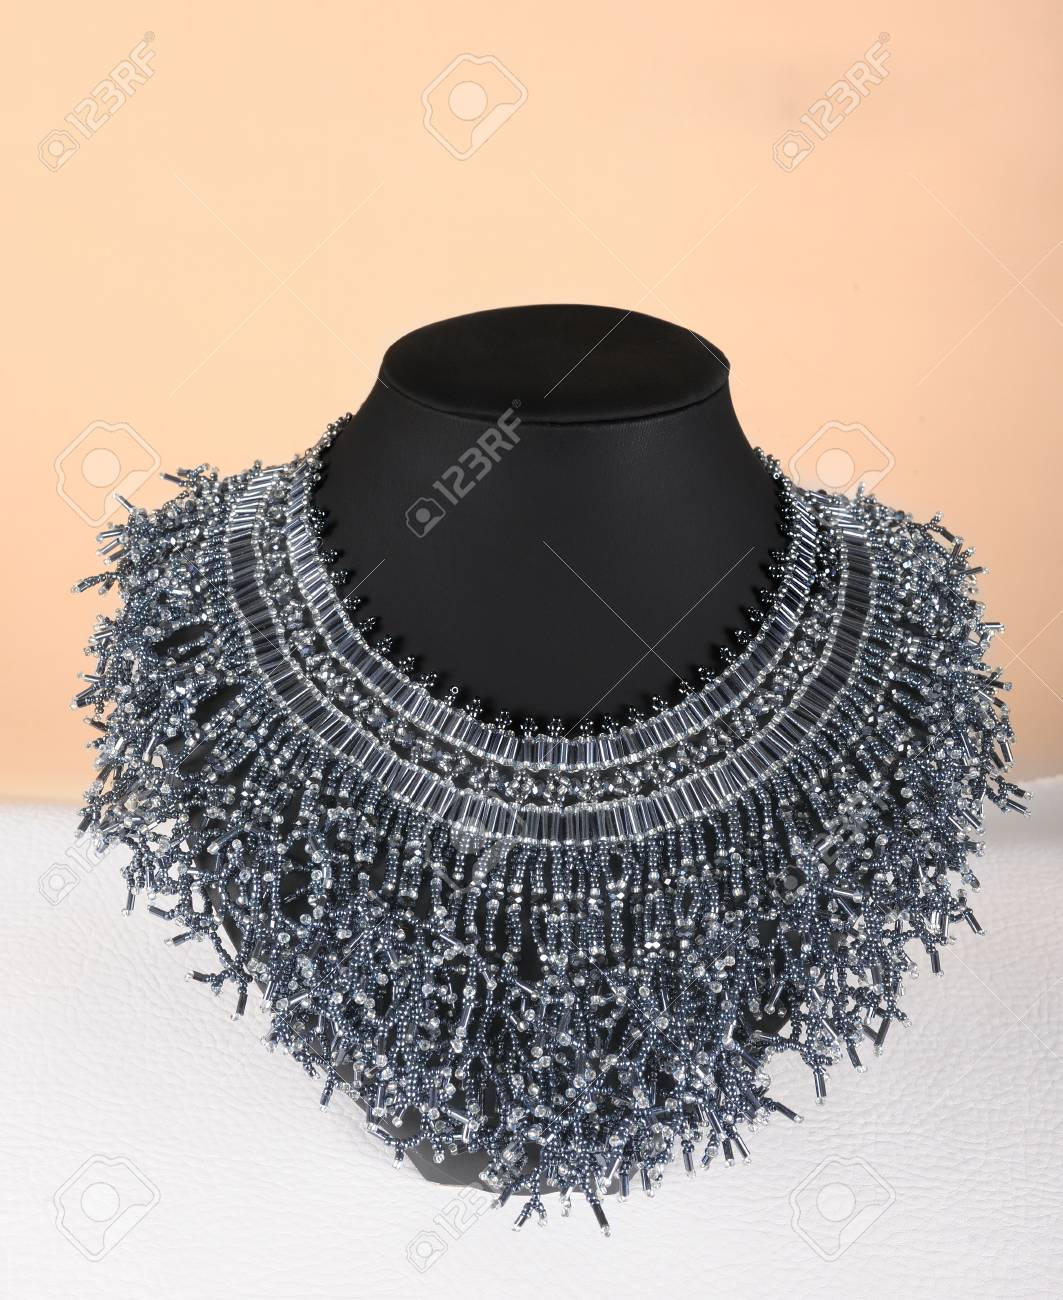 83f36393dc7257 Beaded collar. Vintage lace detachable collar-necklace. Embroidery  handmade. Decor for wedding